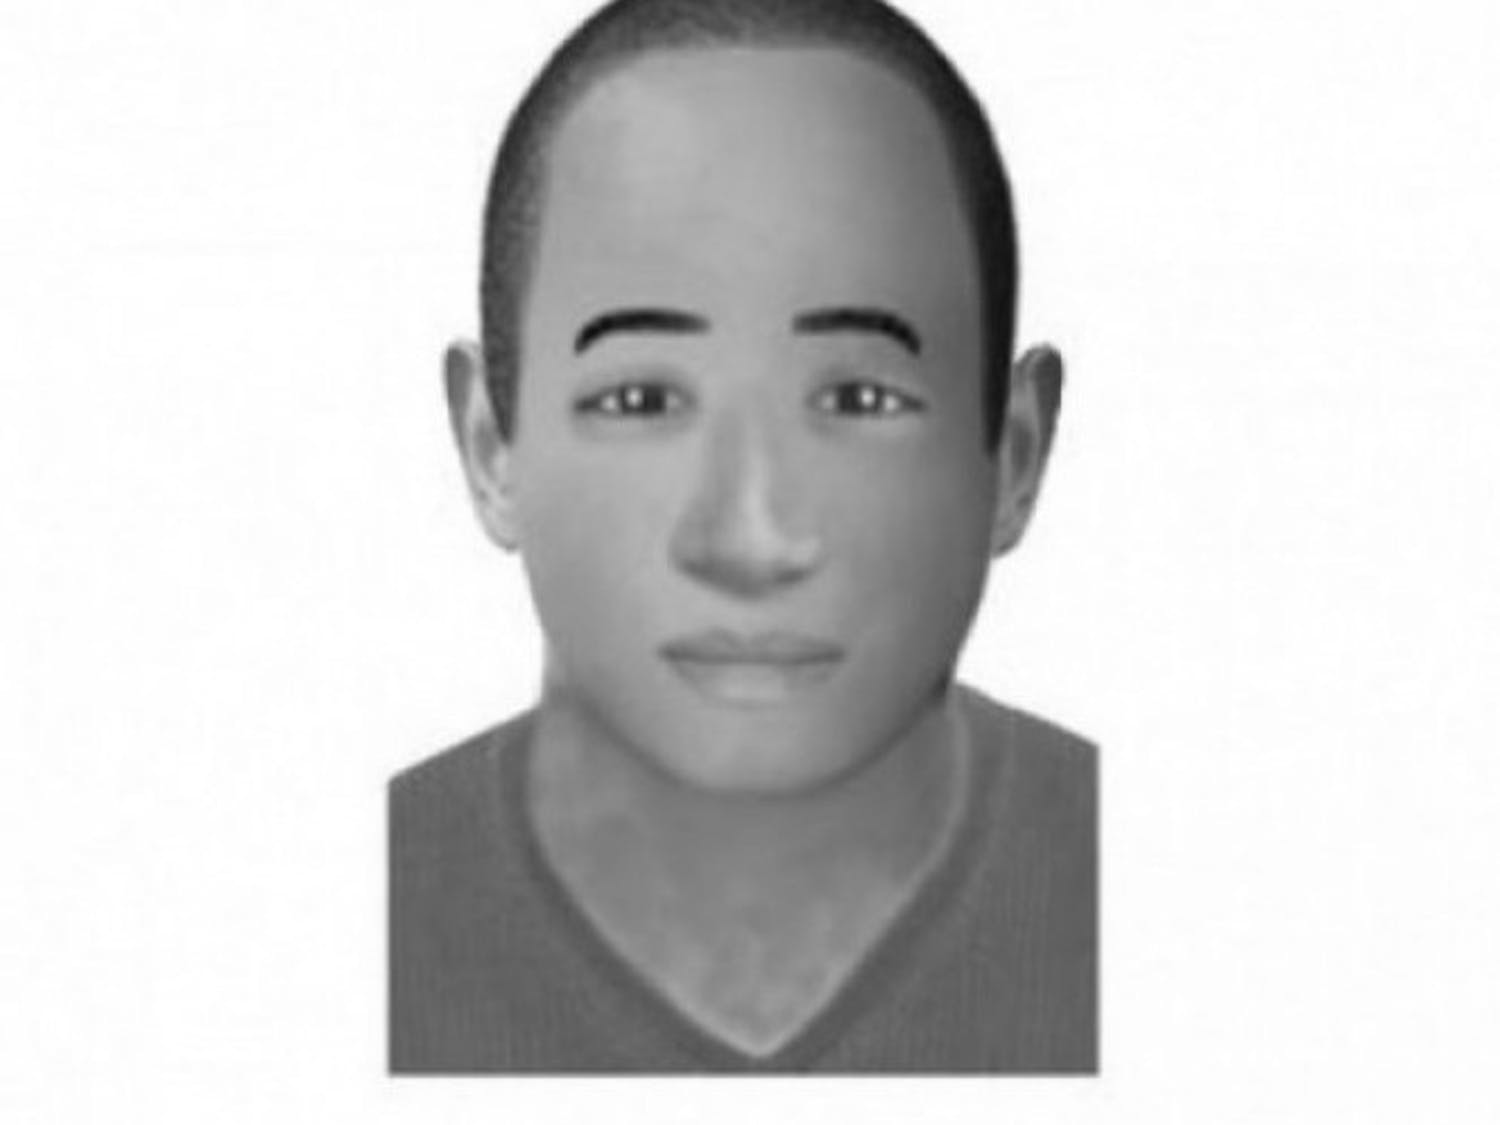 Police provided this composite sketch of the suspect in an attempted sexual assault.